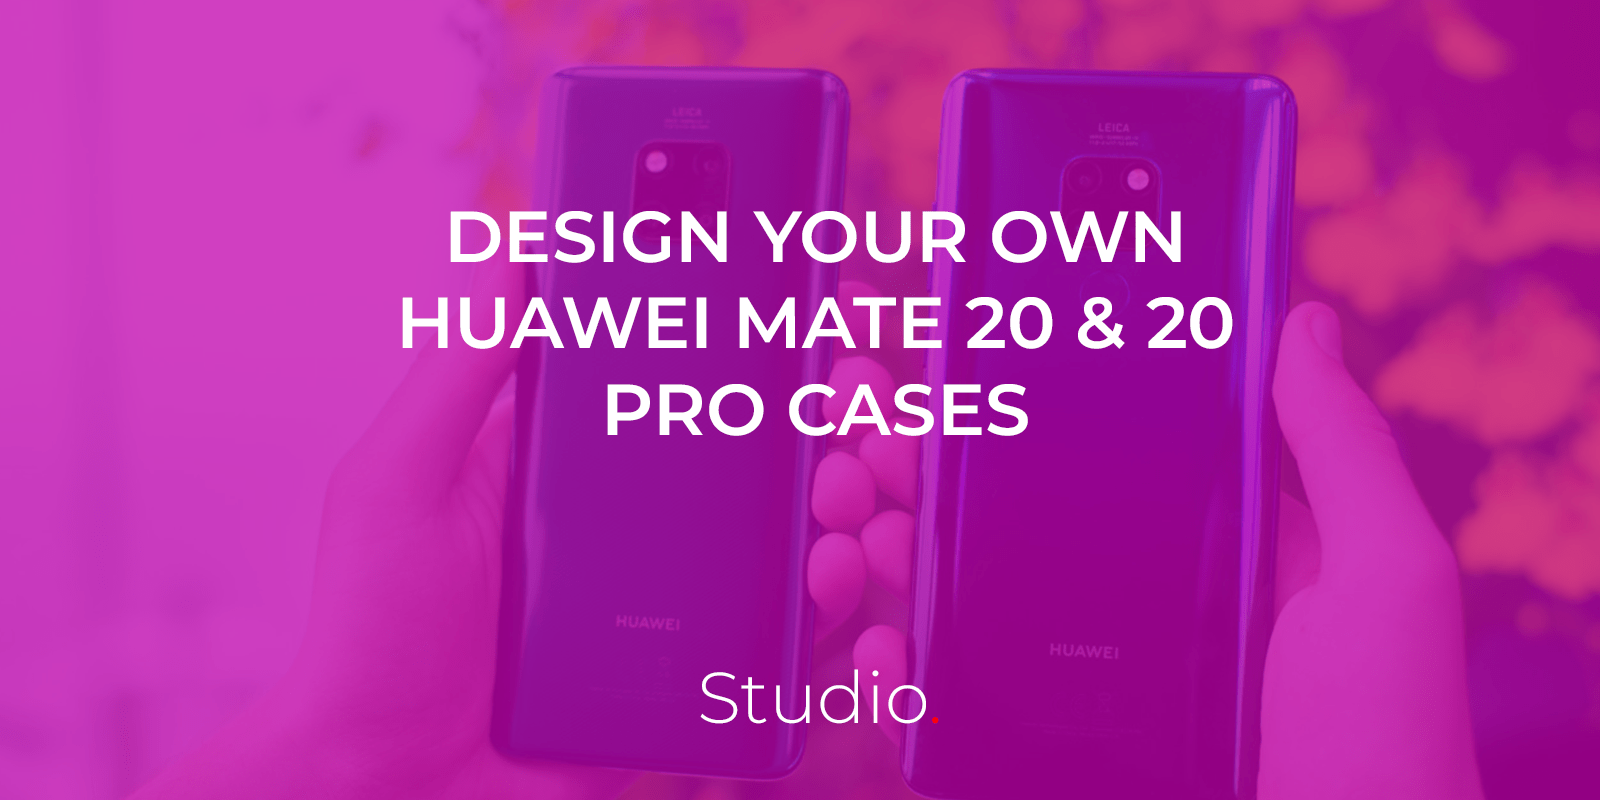 Customise phone cases for the Huawei Mate 20 and Huawei Mate 20 Pro